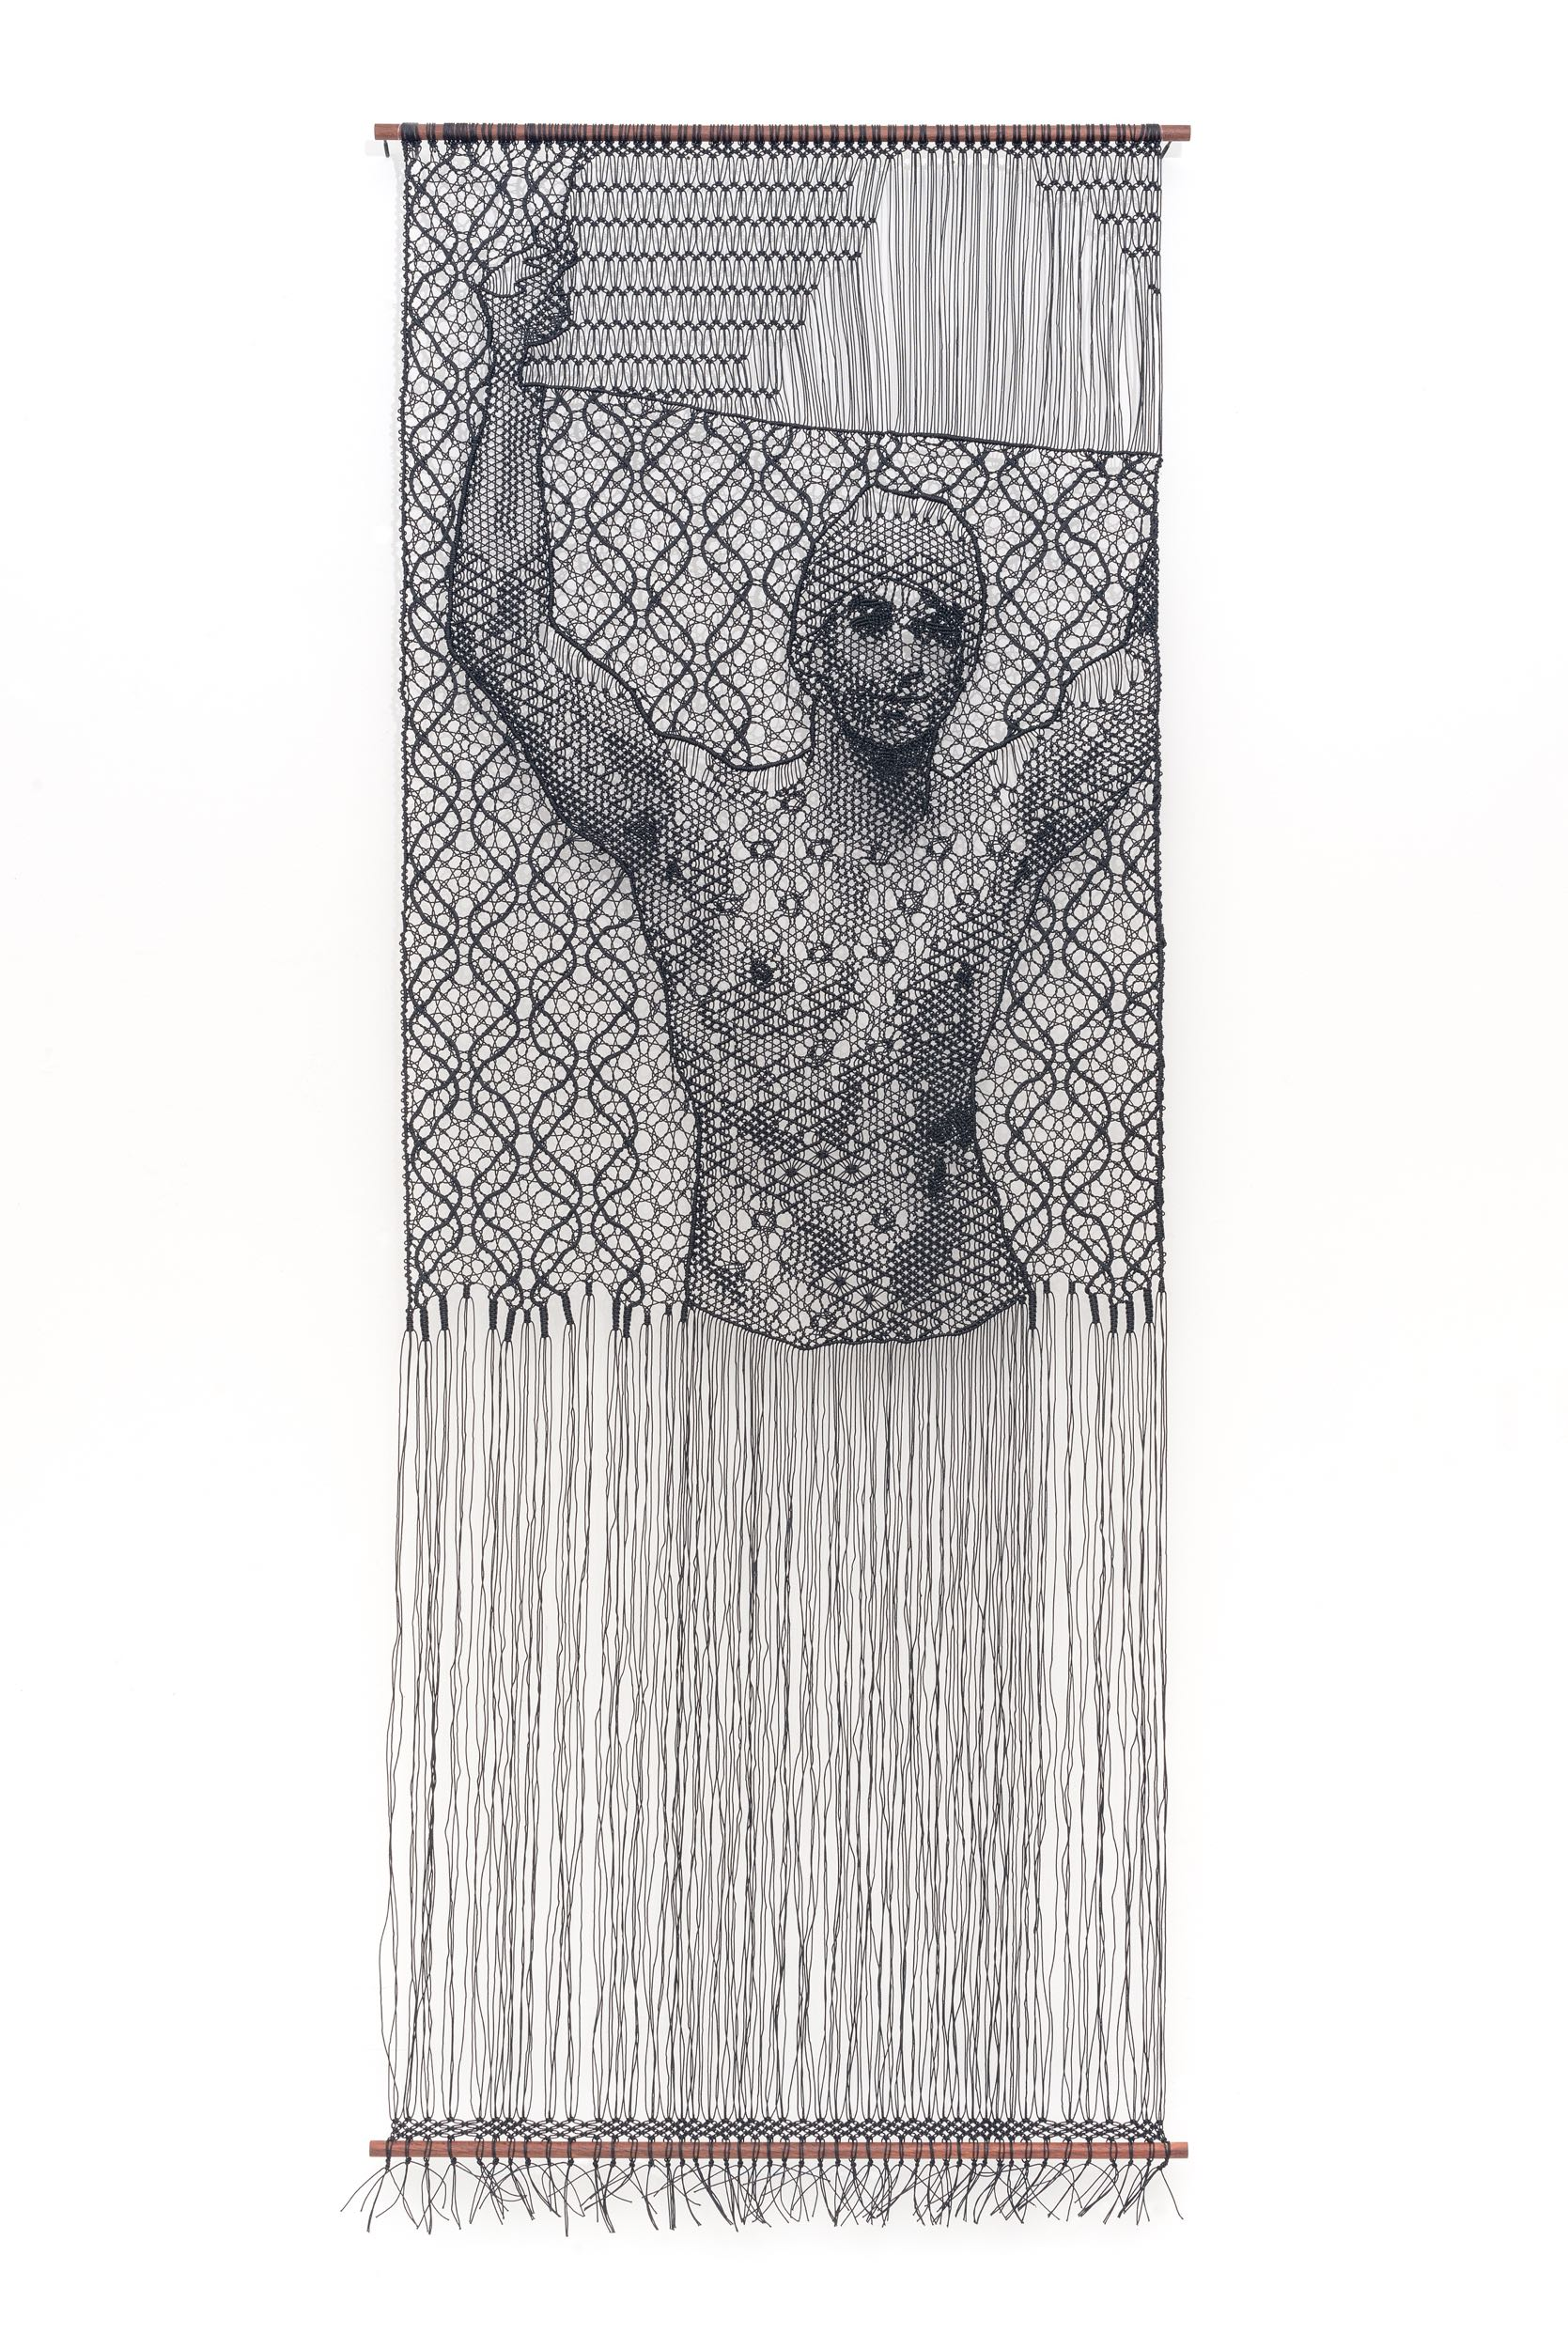 Updated: Pierre Fouché's Intricate Photographic Lace Can Take Years To Complete